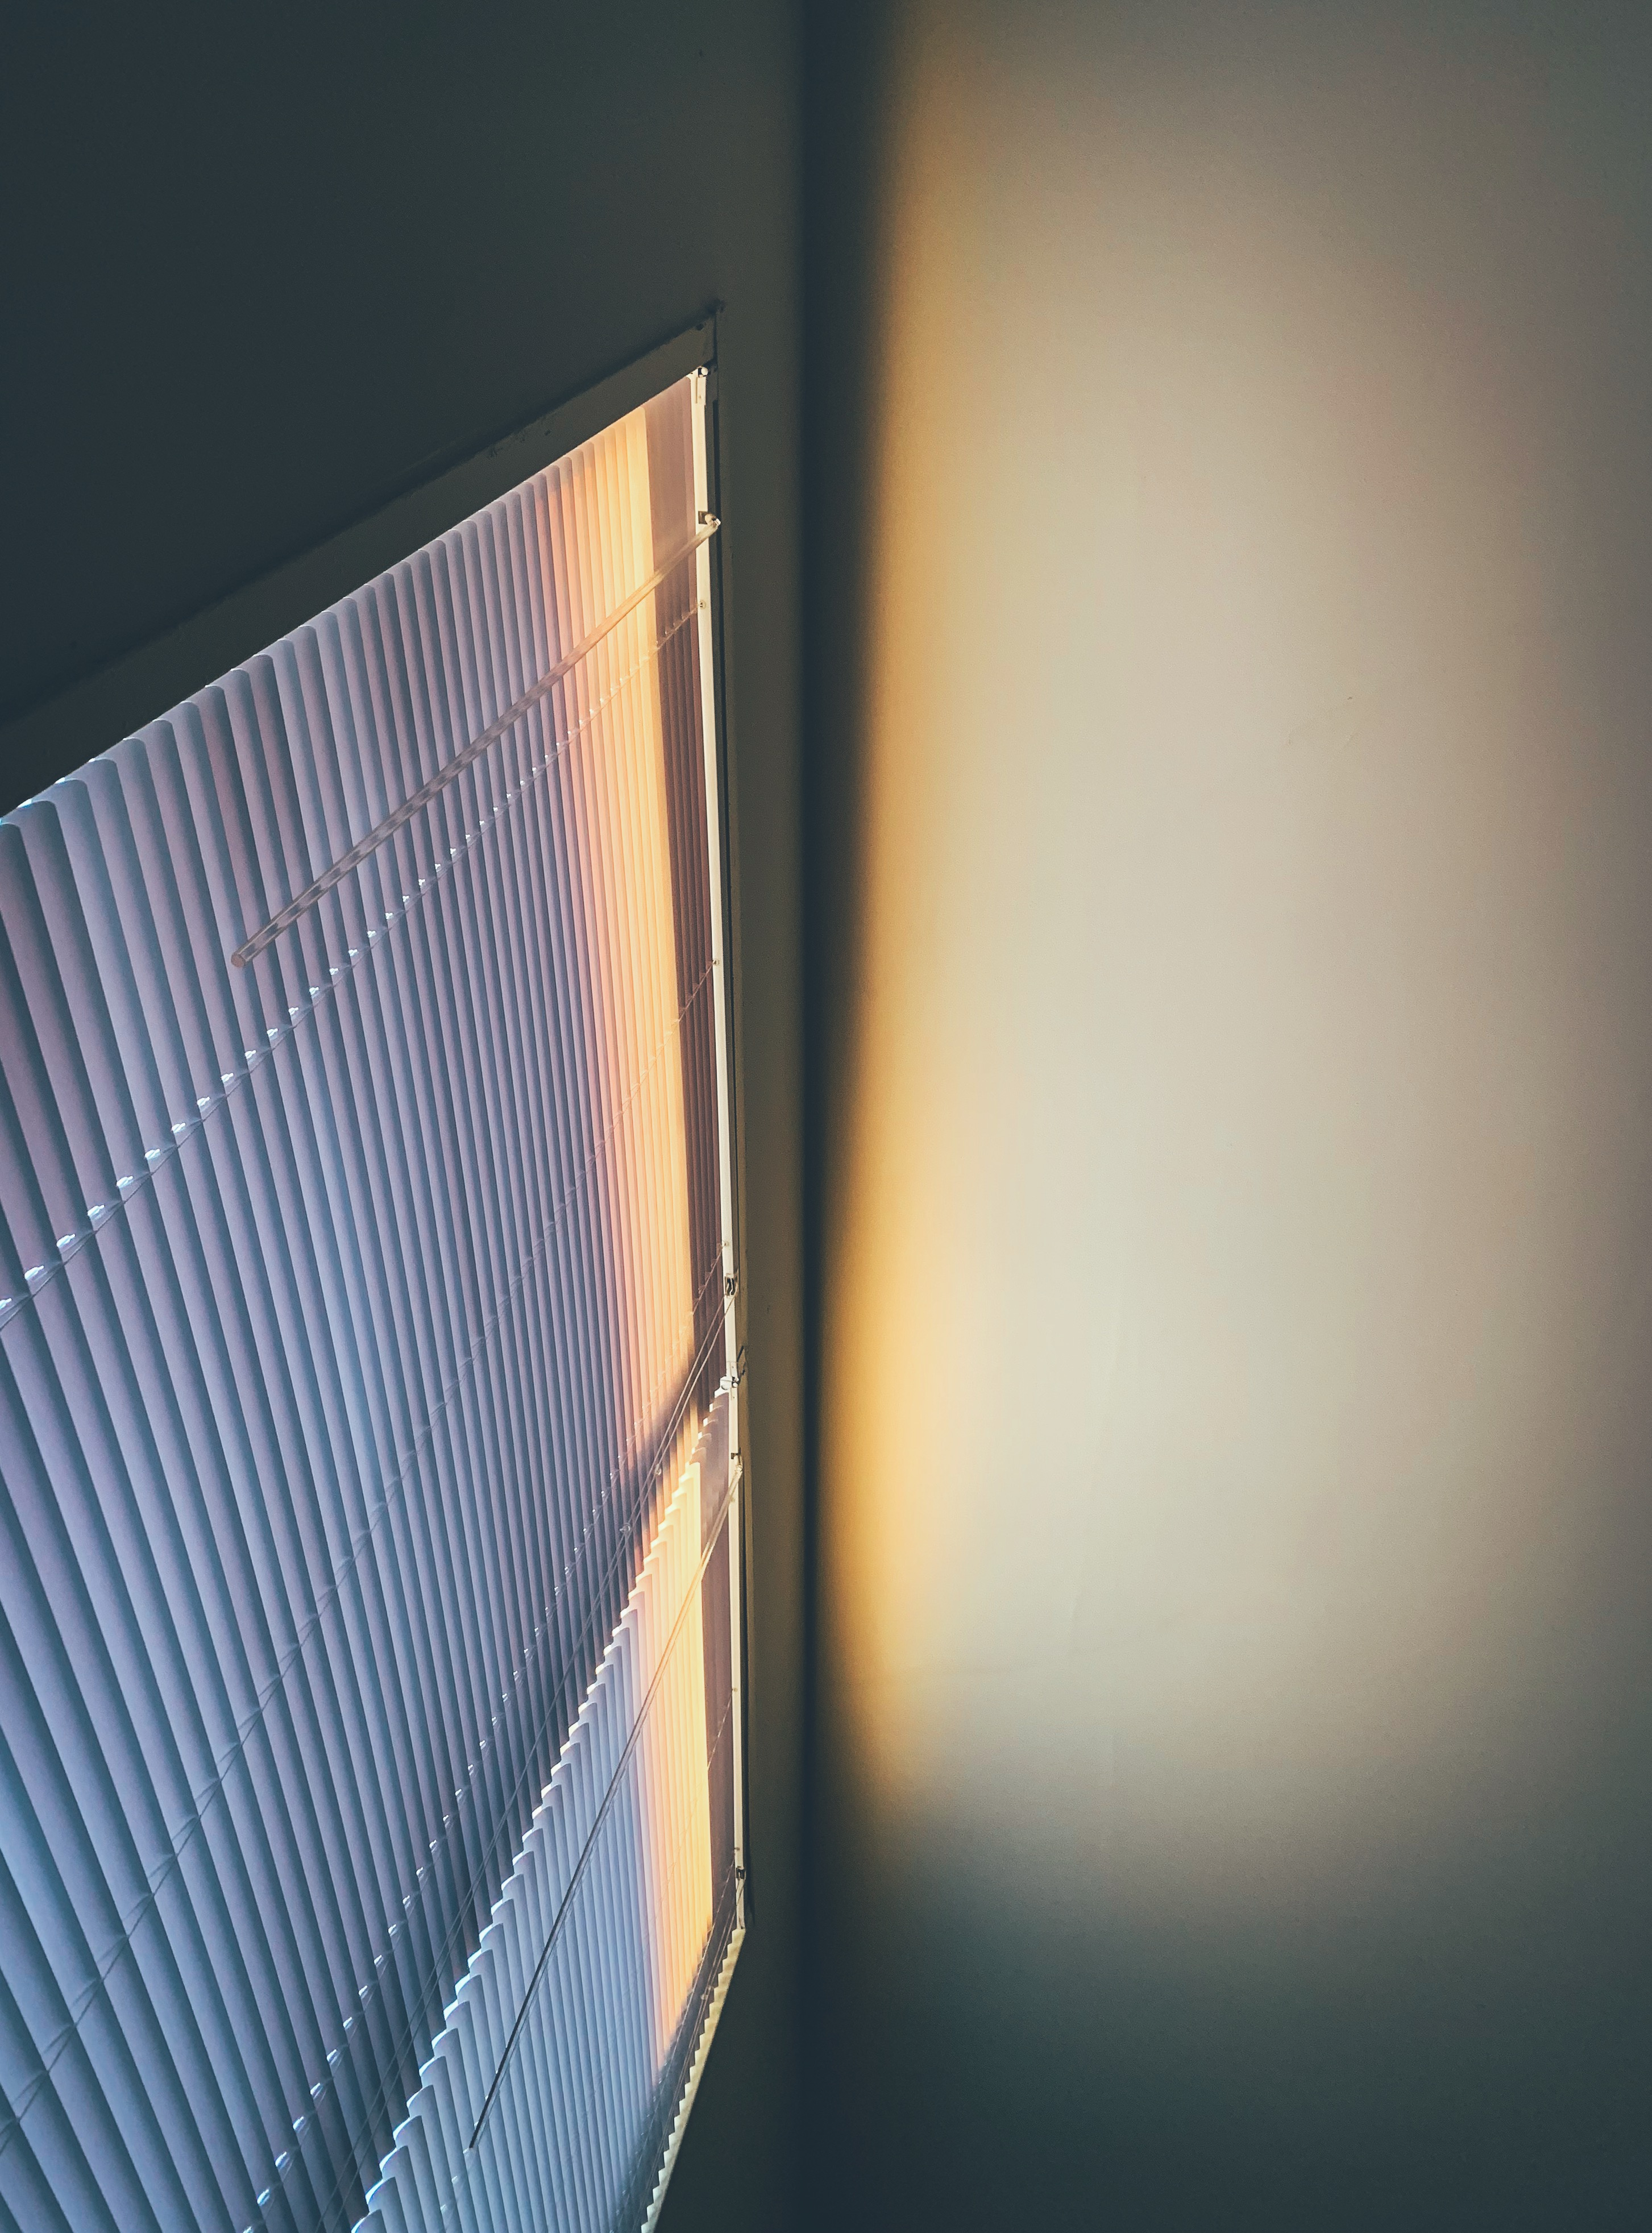 Hidden lines posted on VSCO, light passing through the blinds